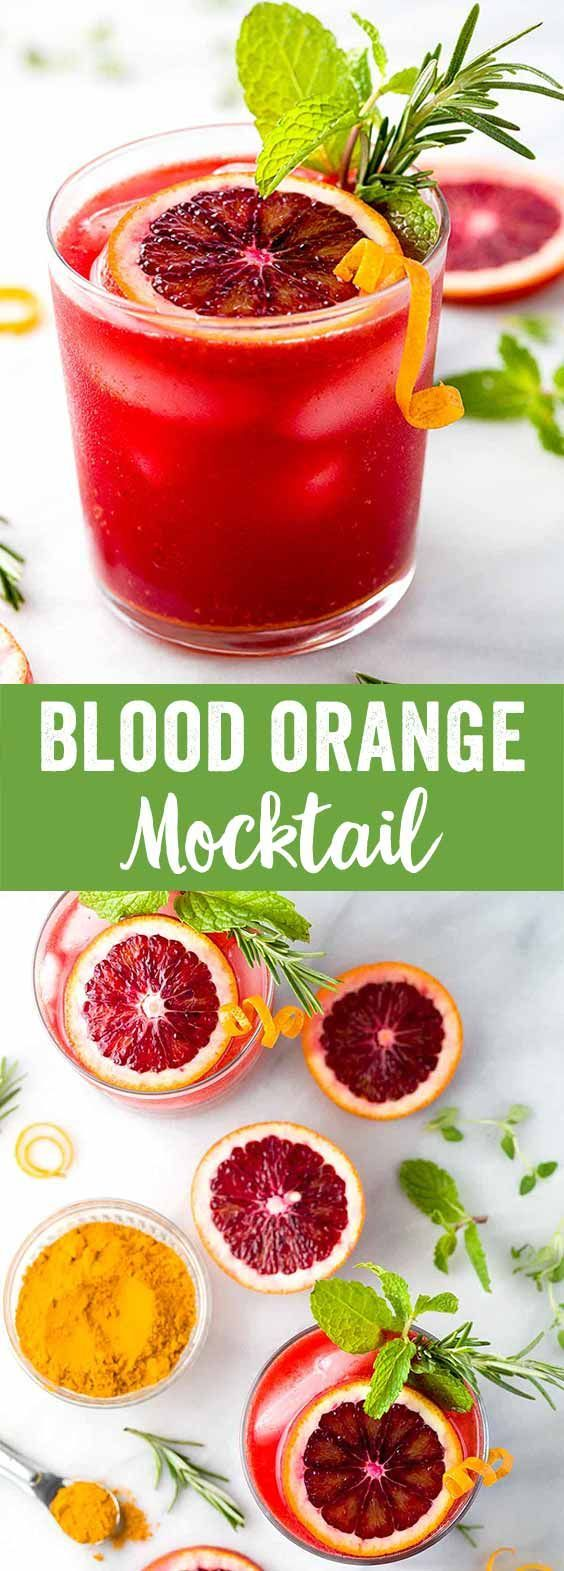 Sparkling Blood Orange Mocktail - A refreshing drink recipe packed with healthy nutrients! Each sip infuses turmeric, ginger, fresh squeezed juice, mint, and rosemary.  via @foodiegavin